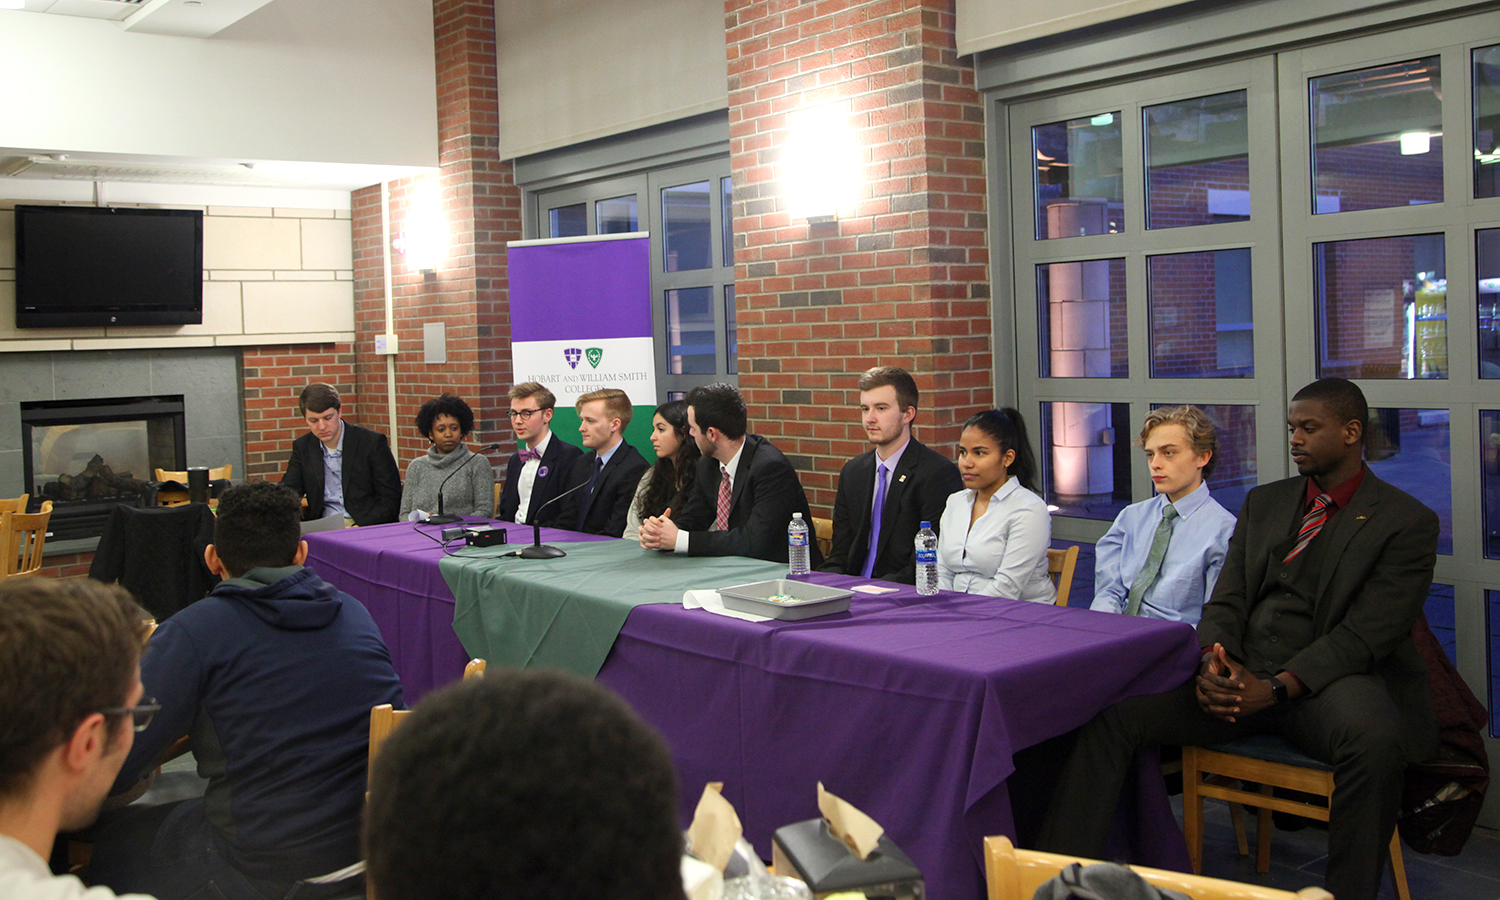 This year's candidates for Student Trustee gather in the Scandling Campus Center café to answer questions. Elections will take place online on Friday, March 2.